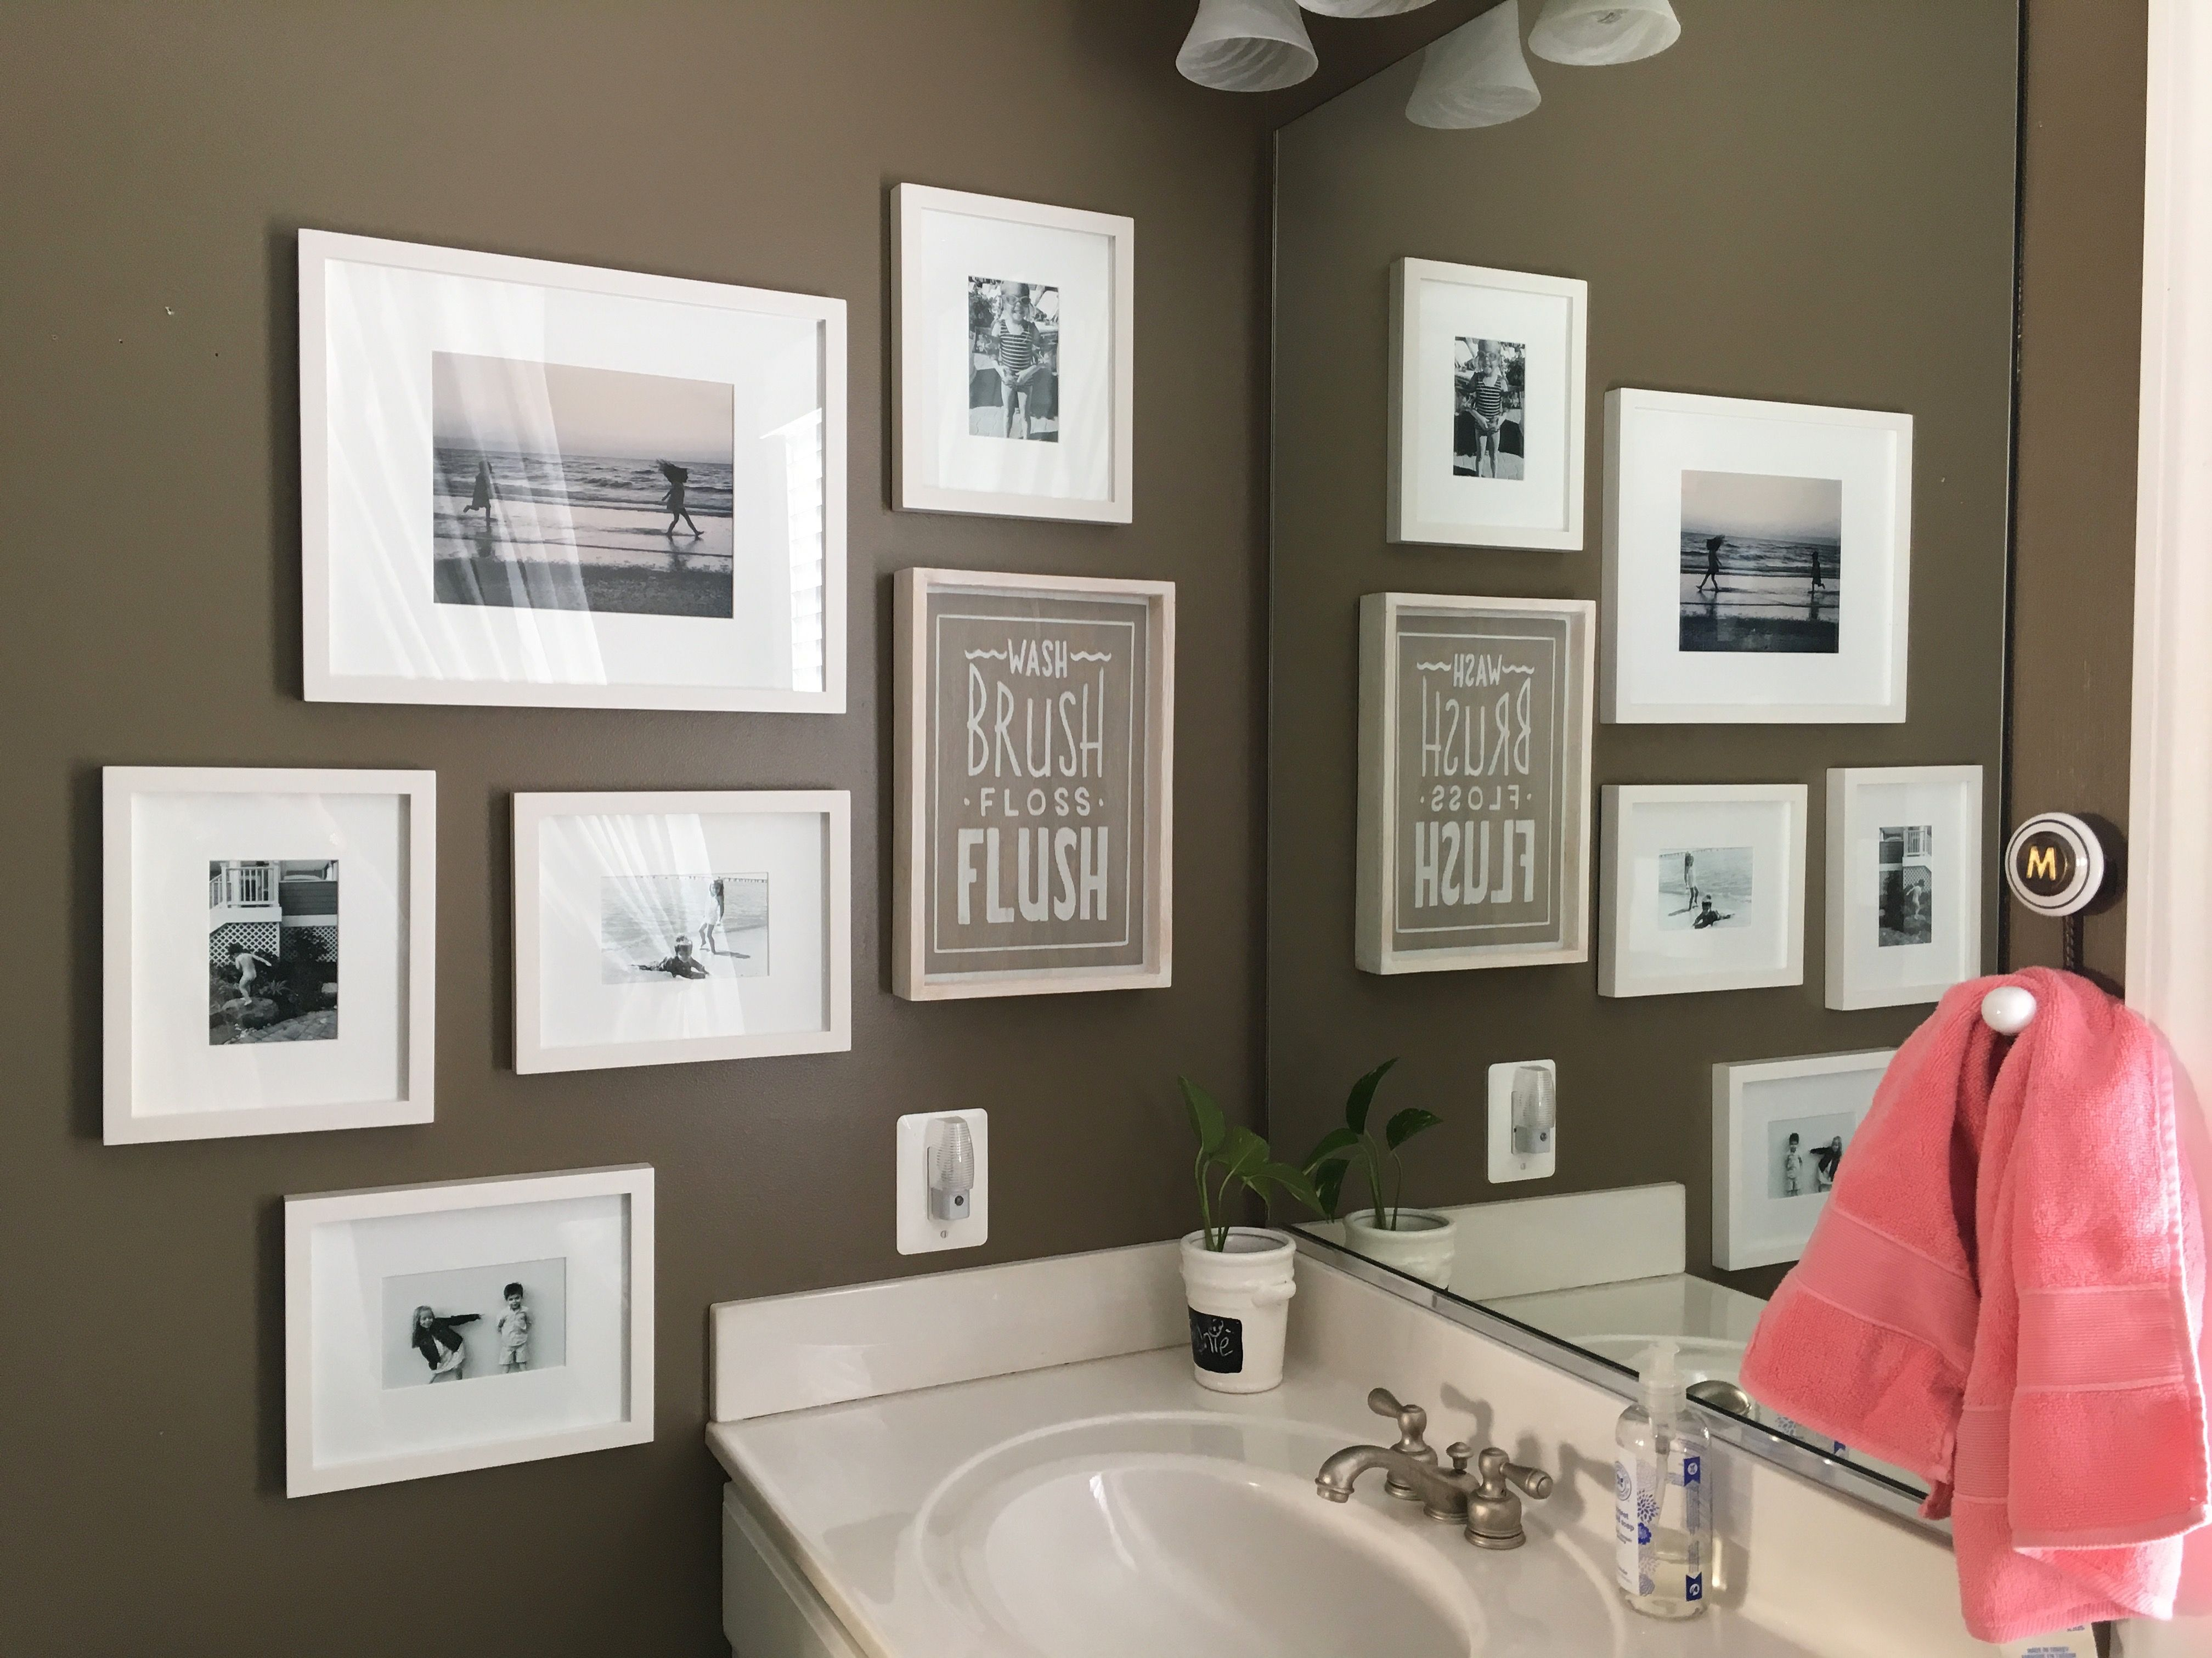 Kids Bathroom Wall Gallery With Basic White In Frames Kid Decor Inspiration